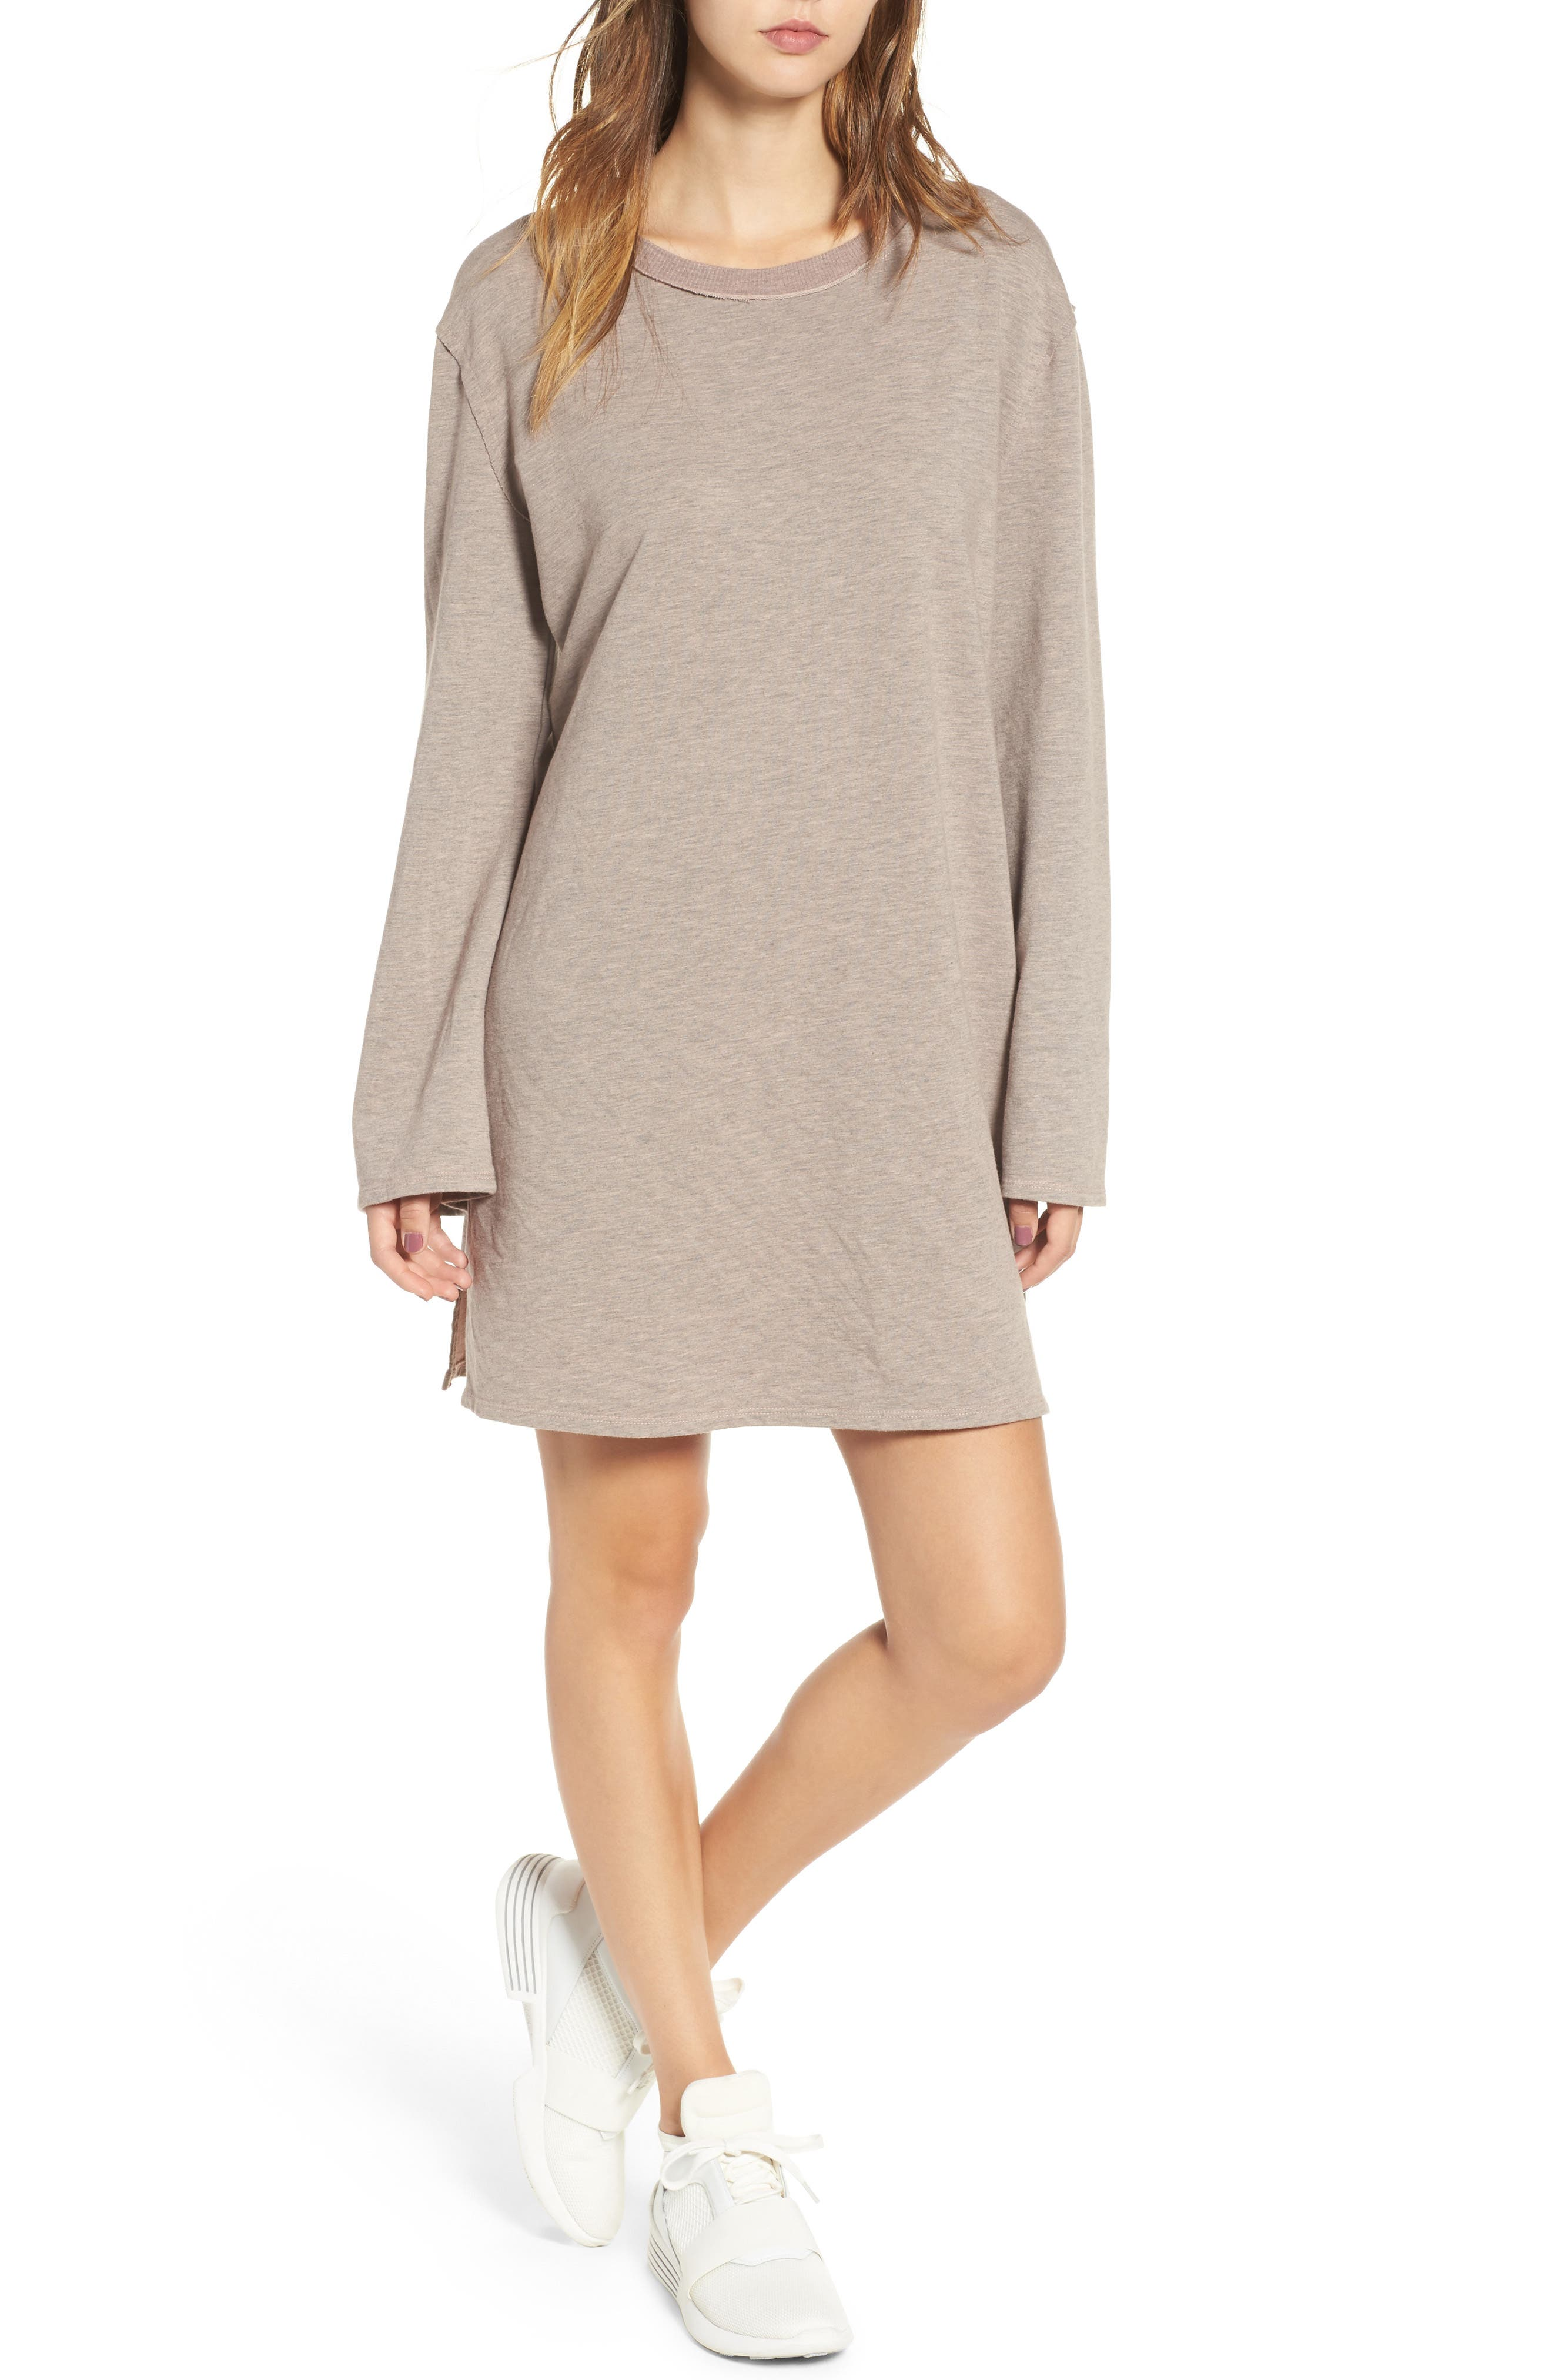 Main Image - PST by Project Social T Low Back Sweatshirt Dress